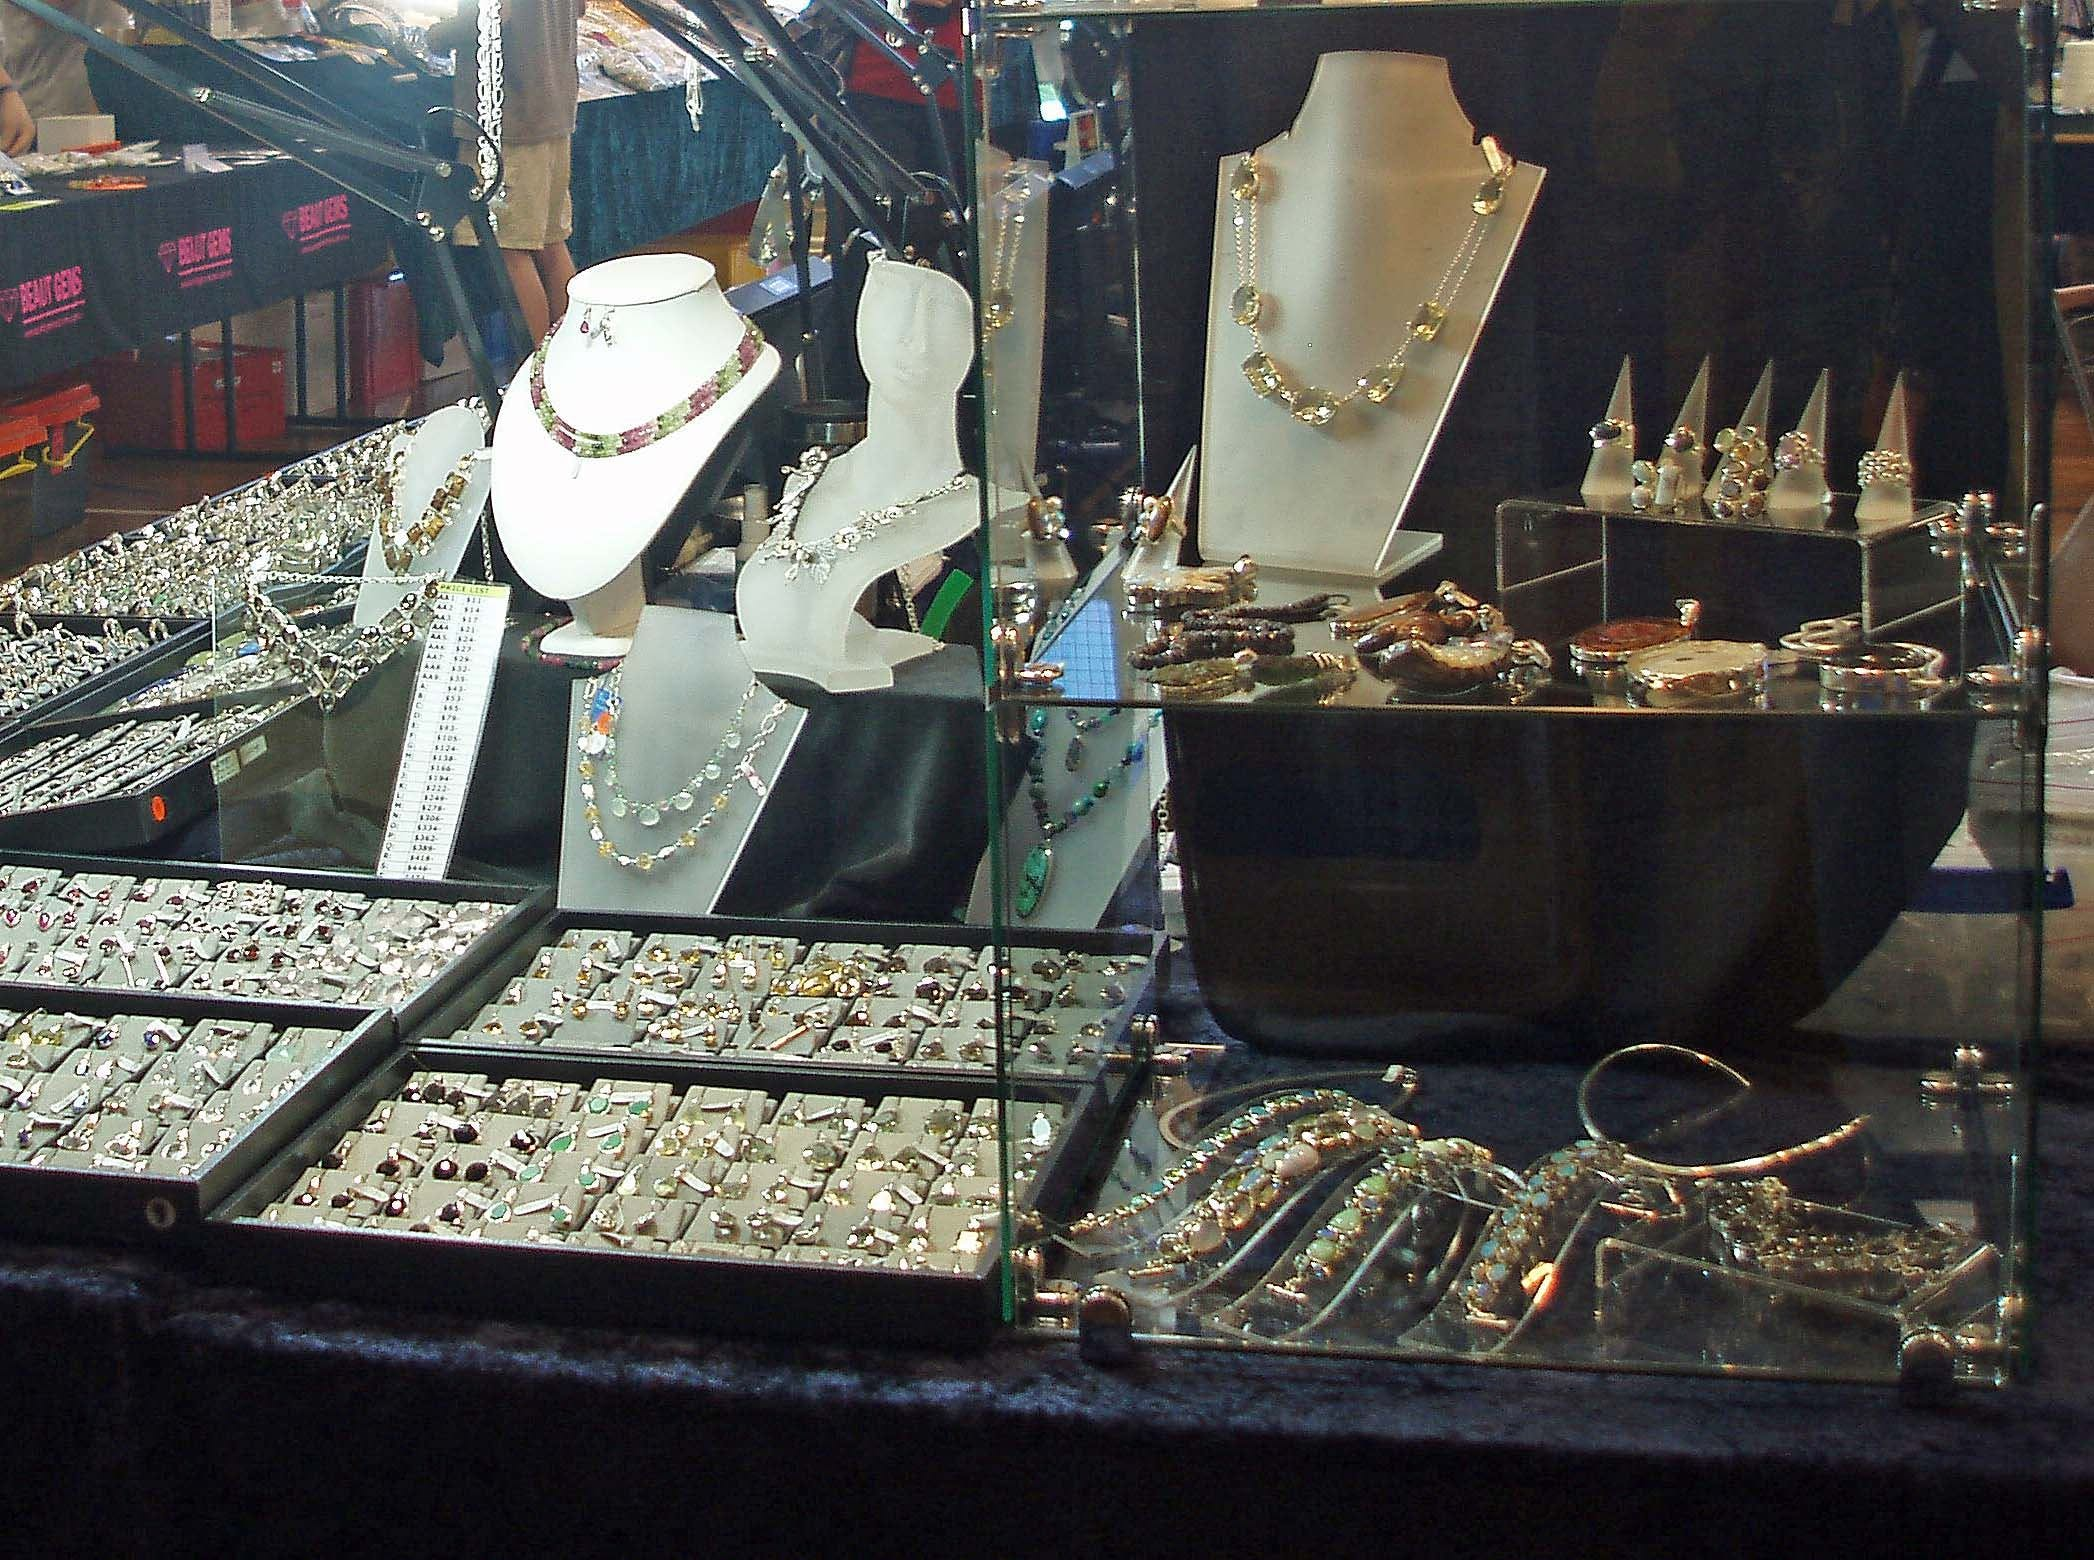 Toowoomba Gemfest - Gems and Jewellery - Tourism Canberra